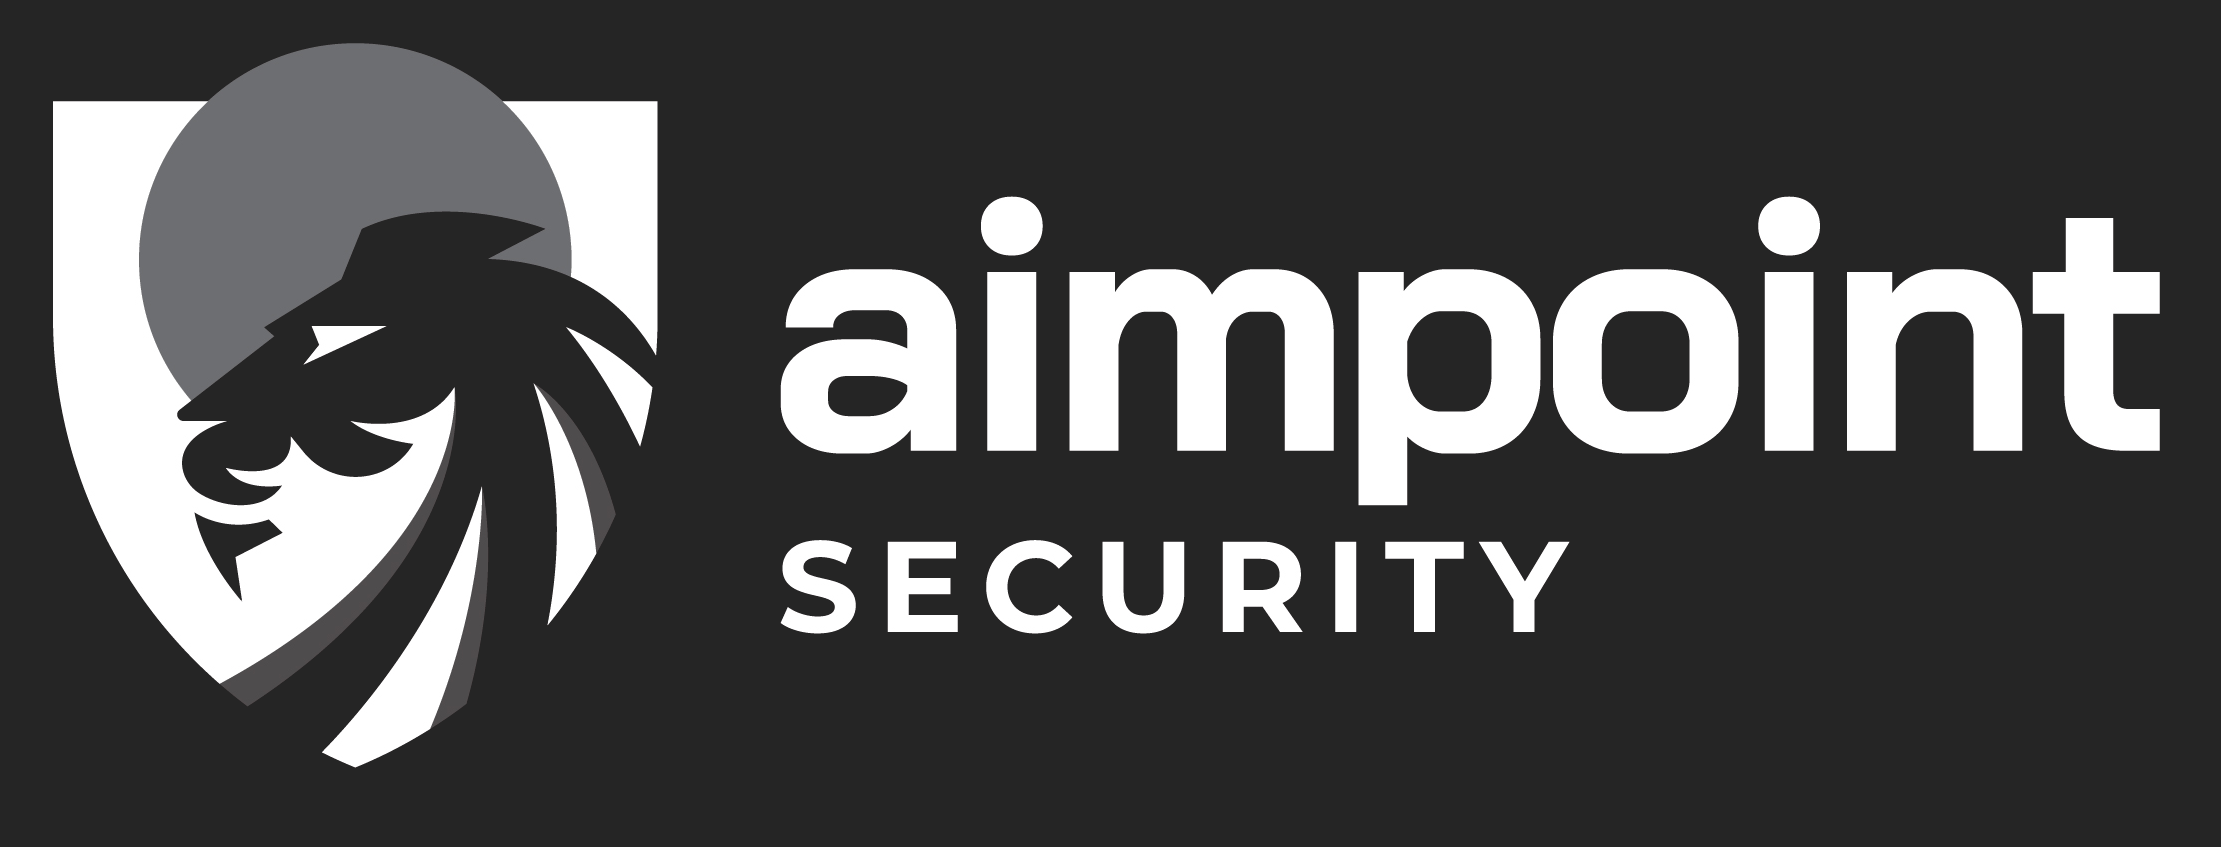 Aimpoint Security